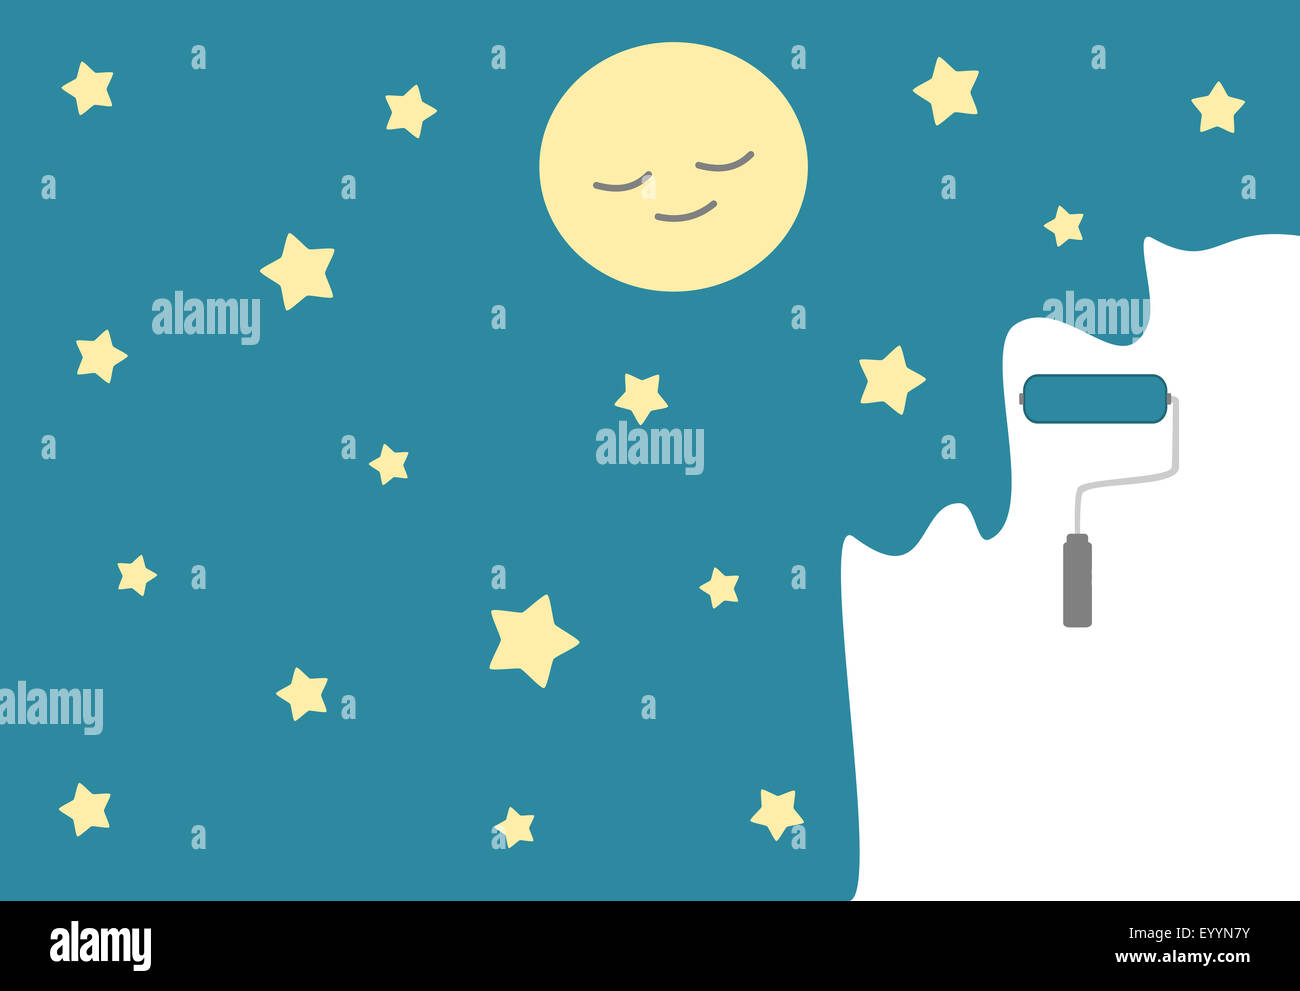 paint your night cute cartoon concept illustration - Stock Image